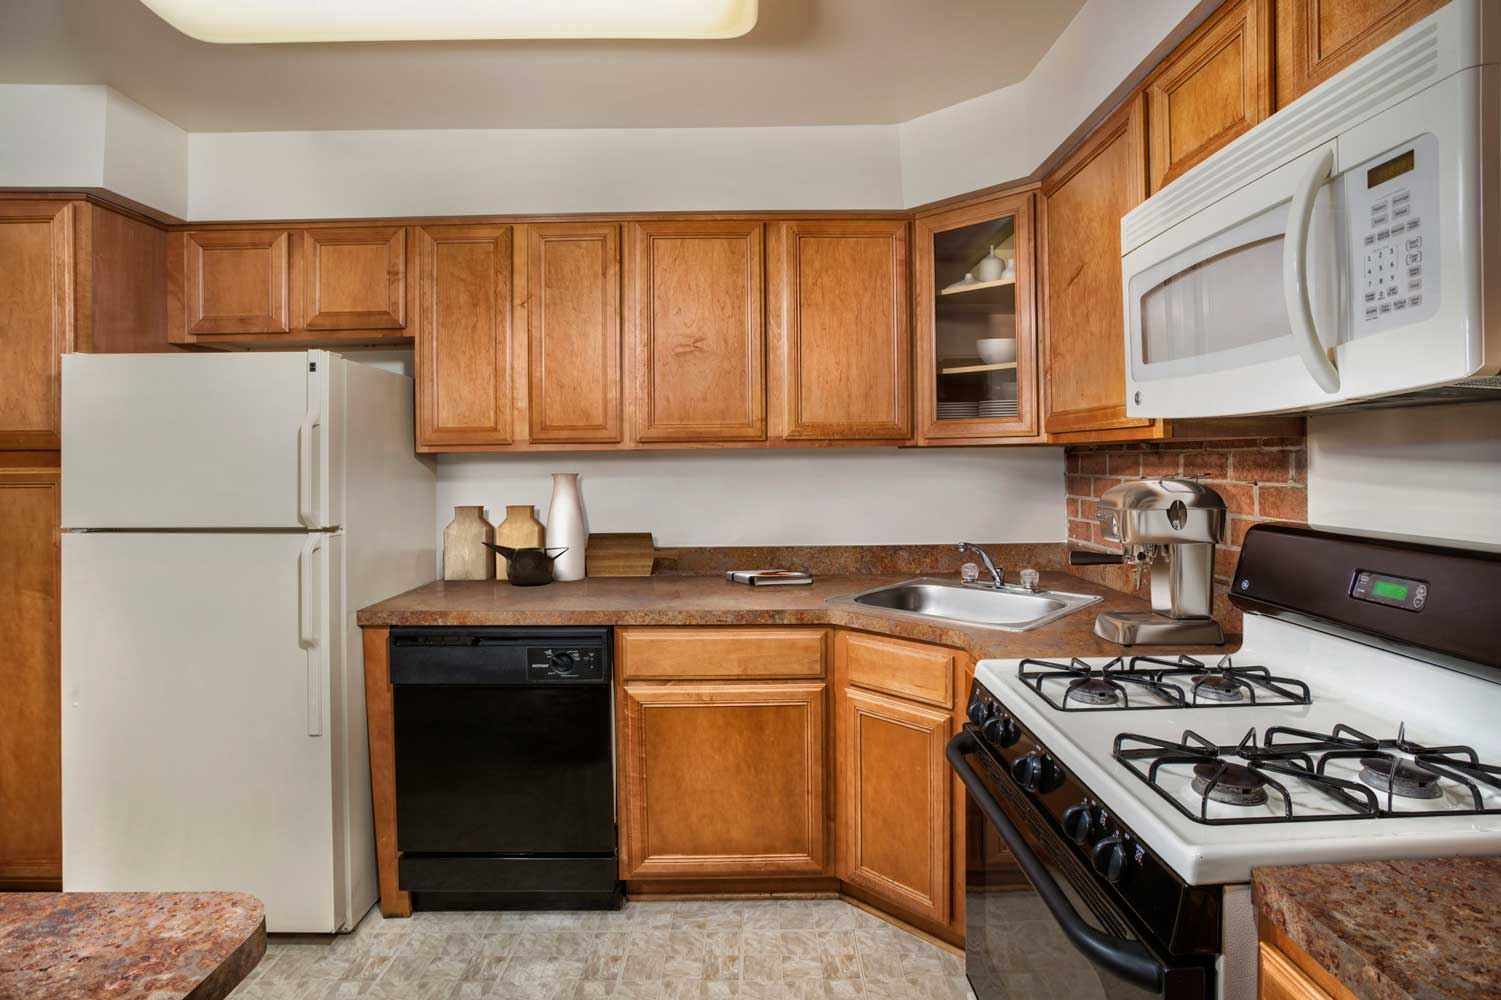 Fully-equipped kitchen at Village Square West Apartments in North Bethesda, MD